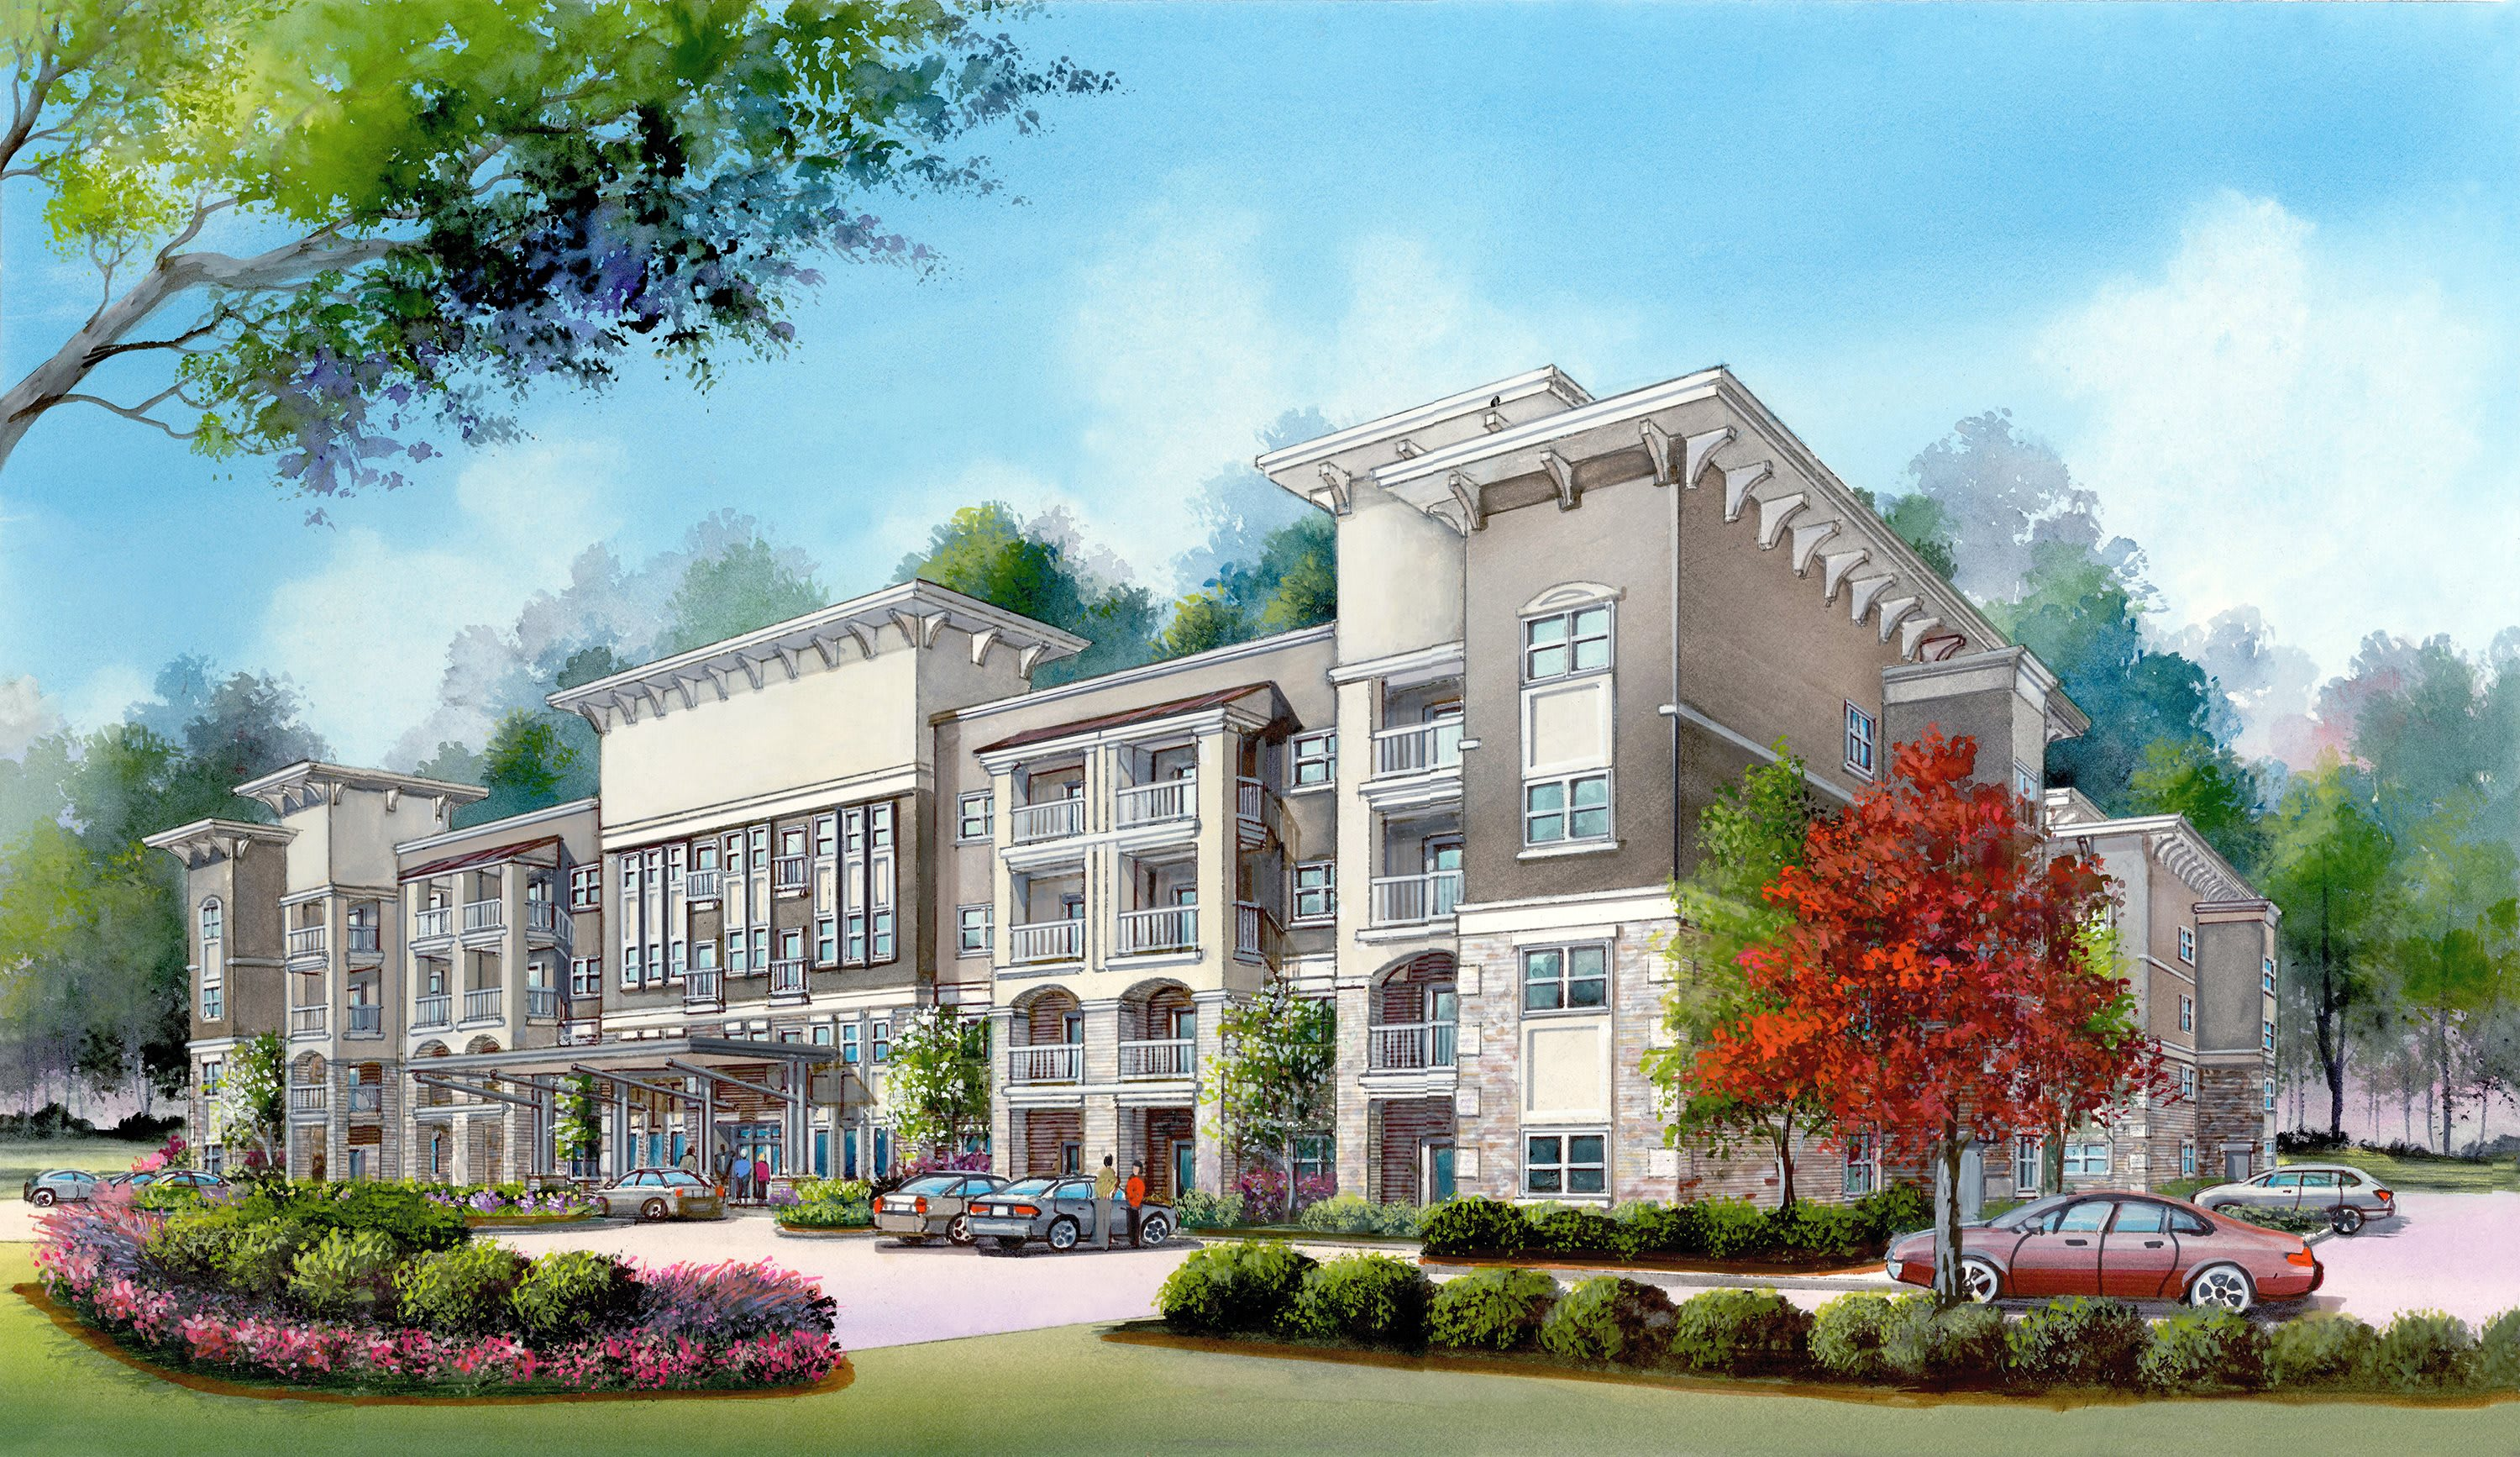 Photo 1 of The Mansions at Gwinnett Park - Senior Independent Living